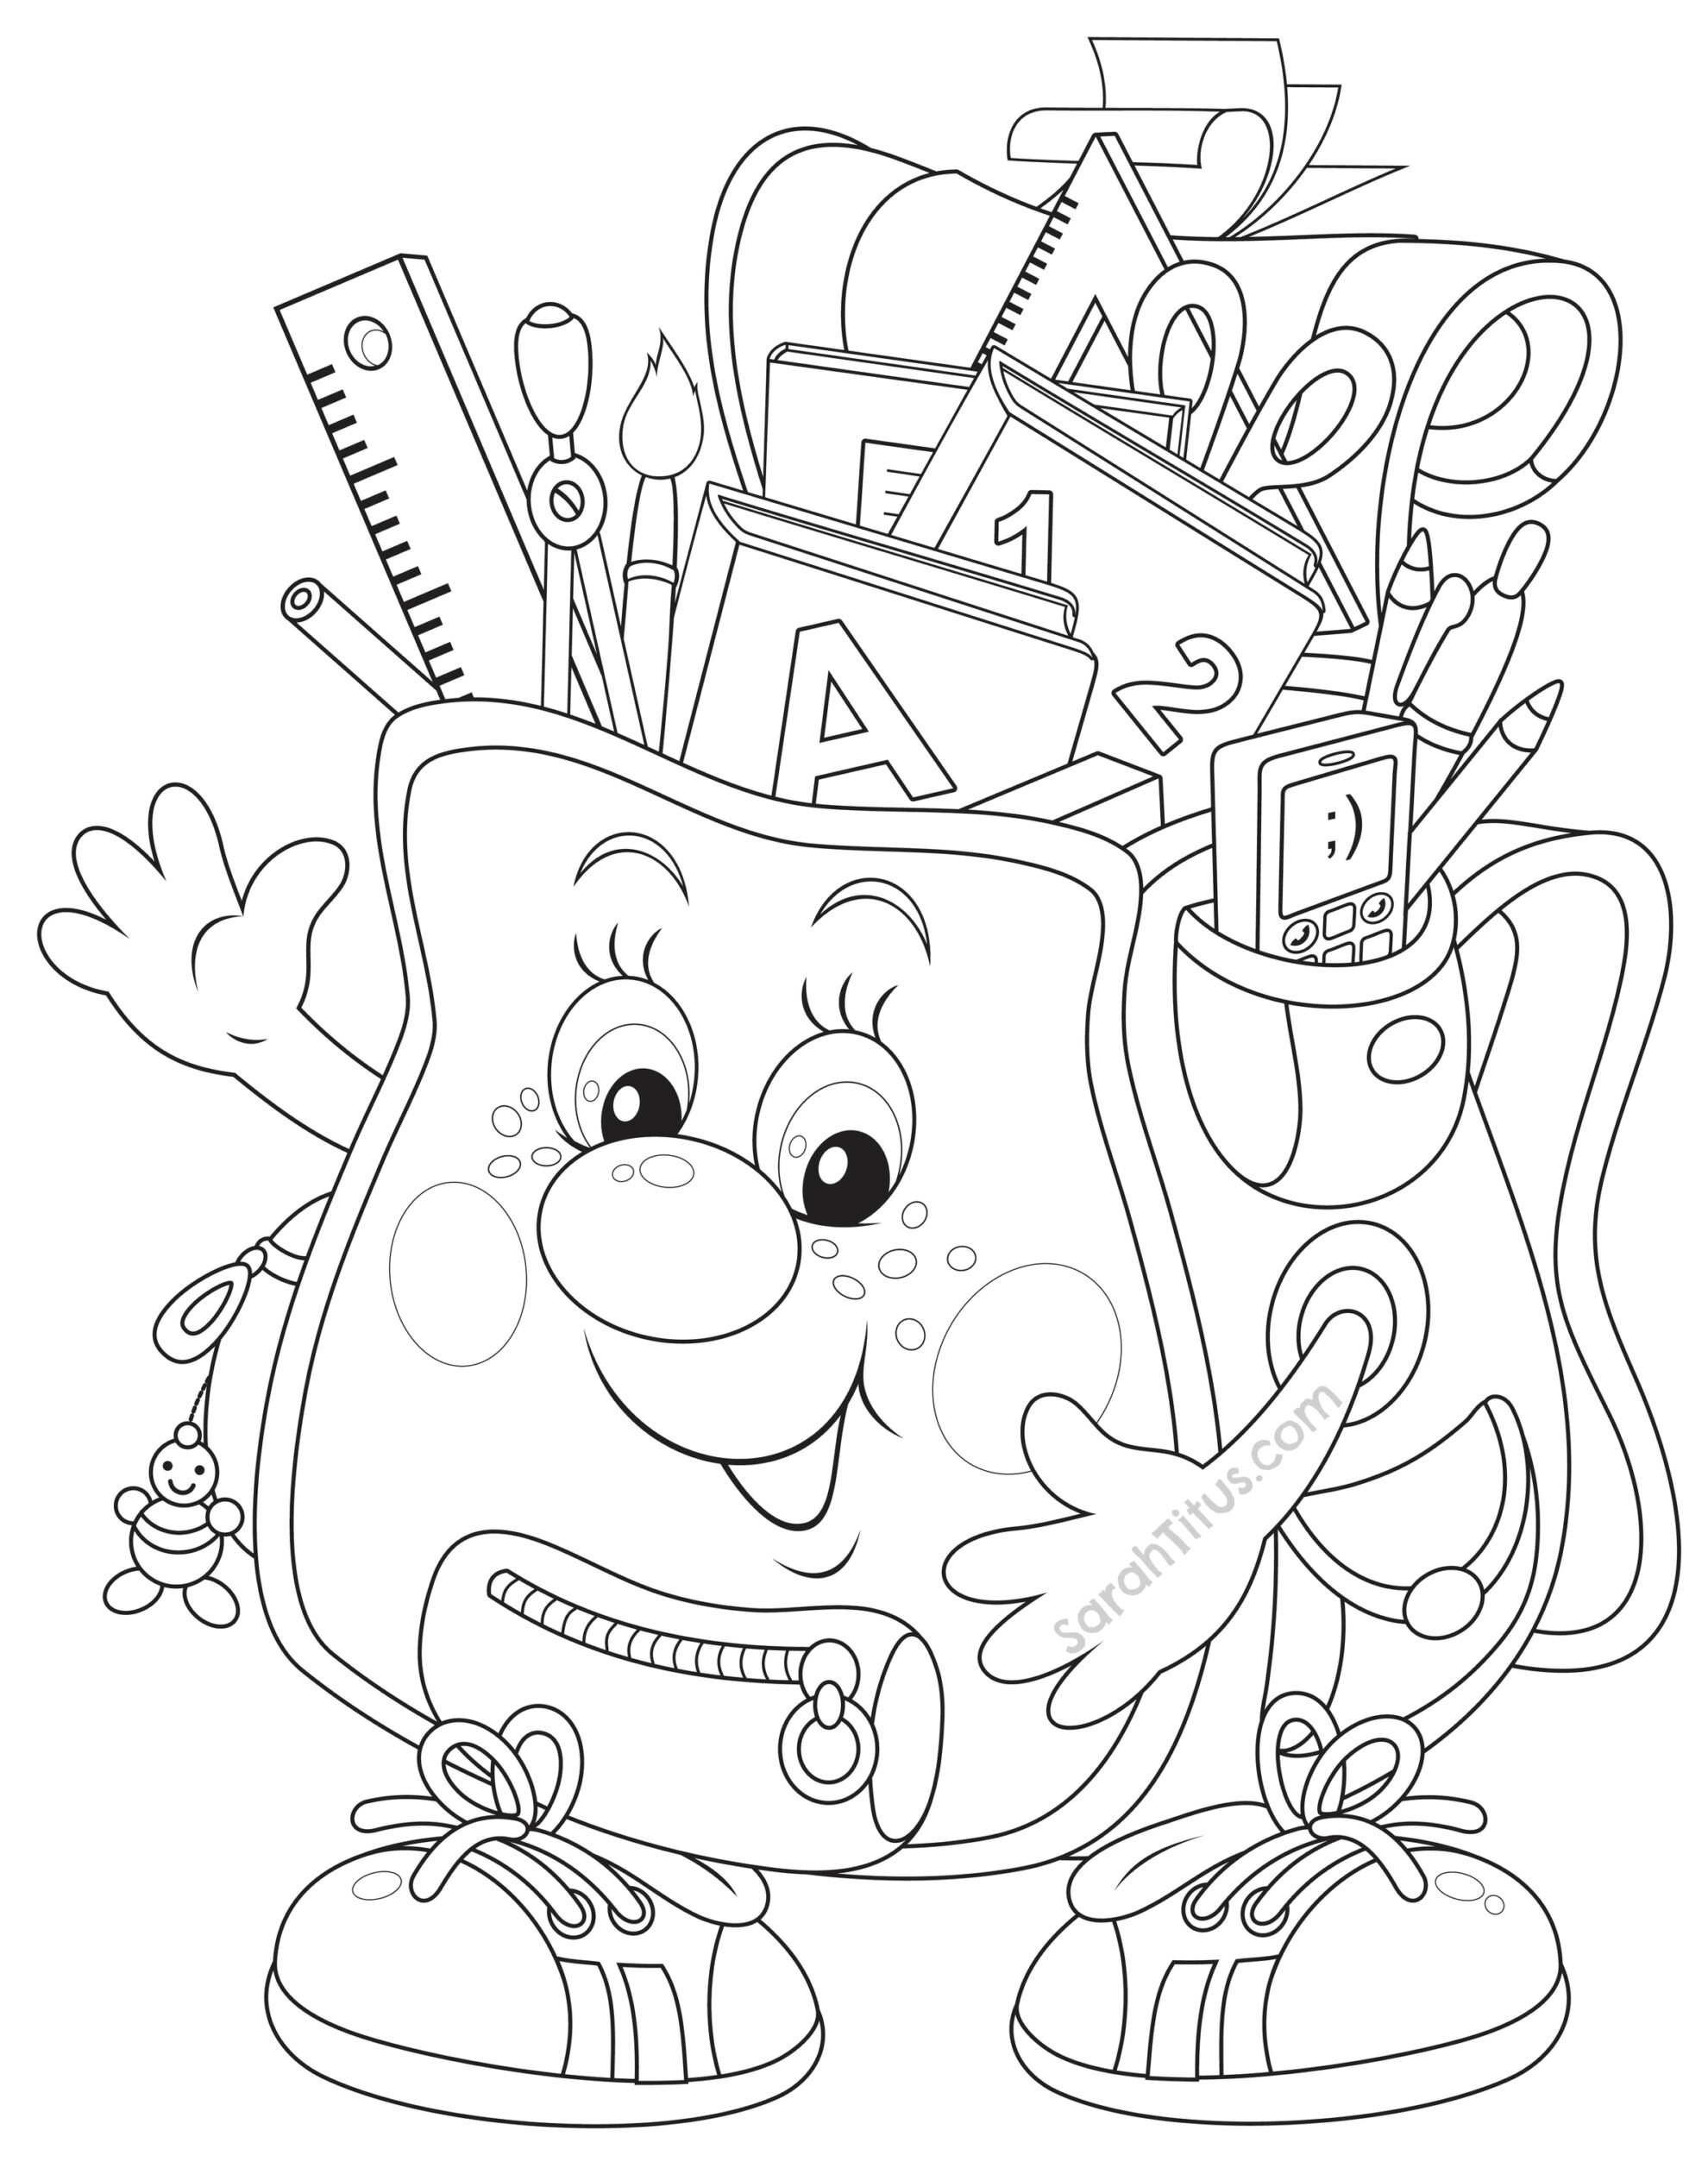 coloring pages back to school - photo#2